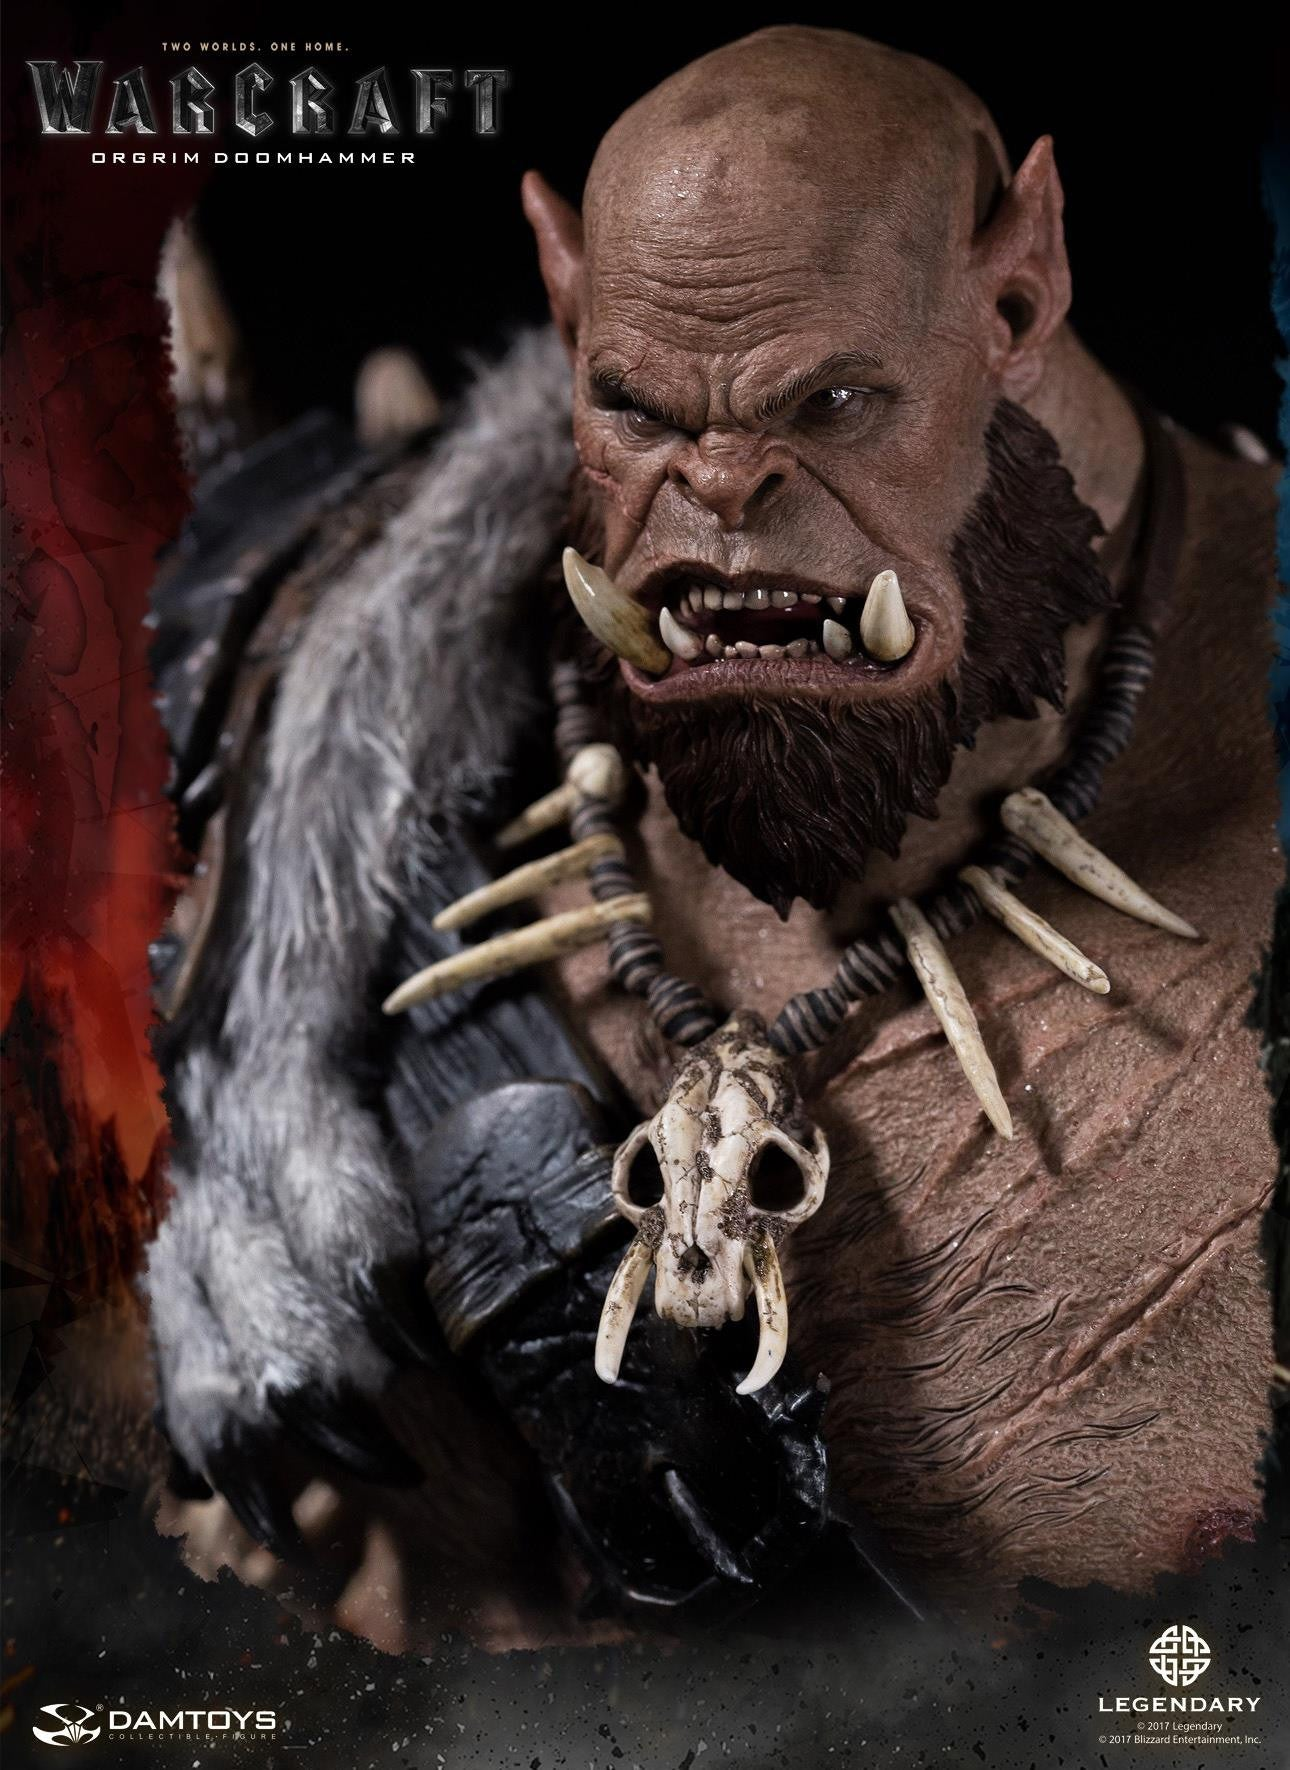 Dam Toys - DMLW02 - Epic Series - Warcraft - Orgrim Doomhammer Premium Statue - Marvelous Toys - 11